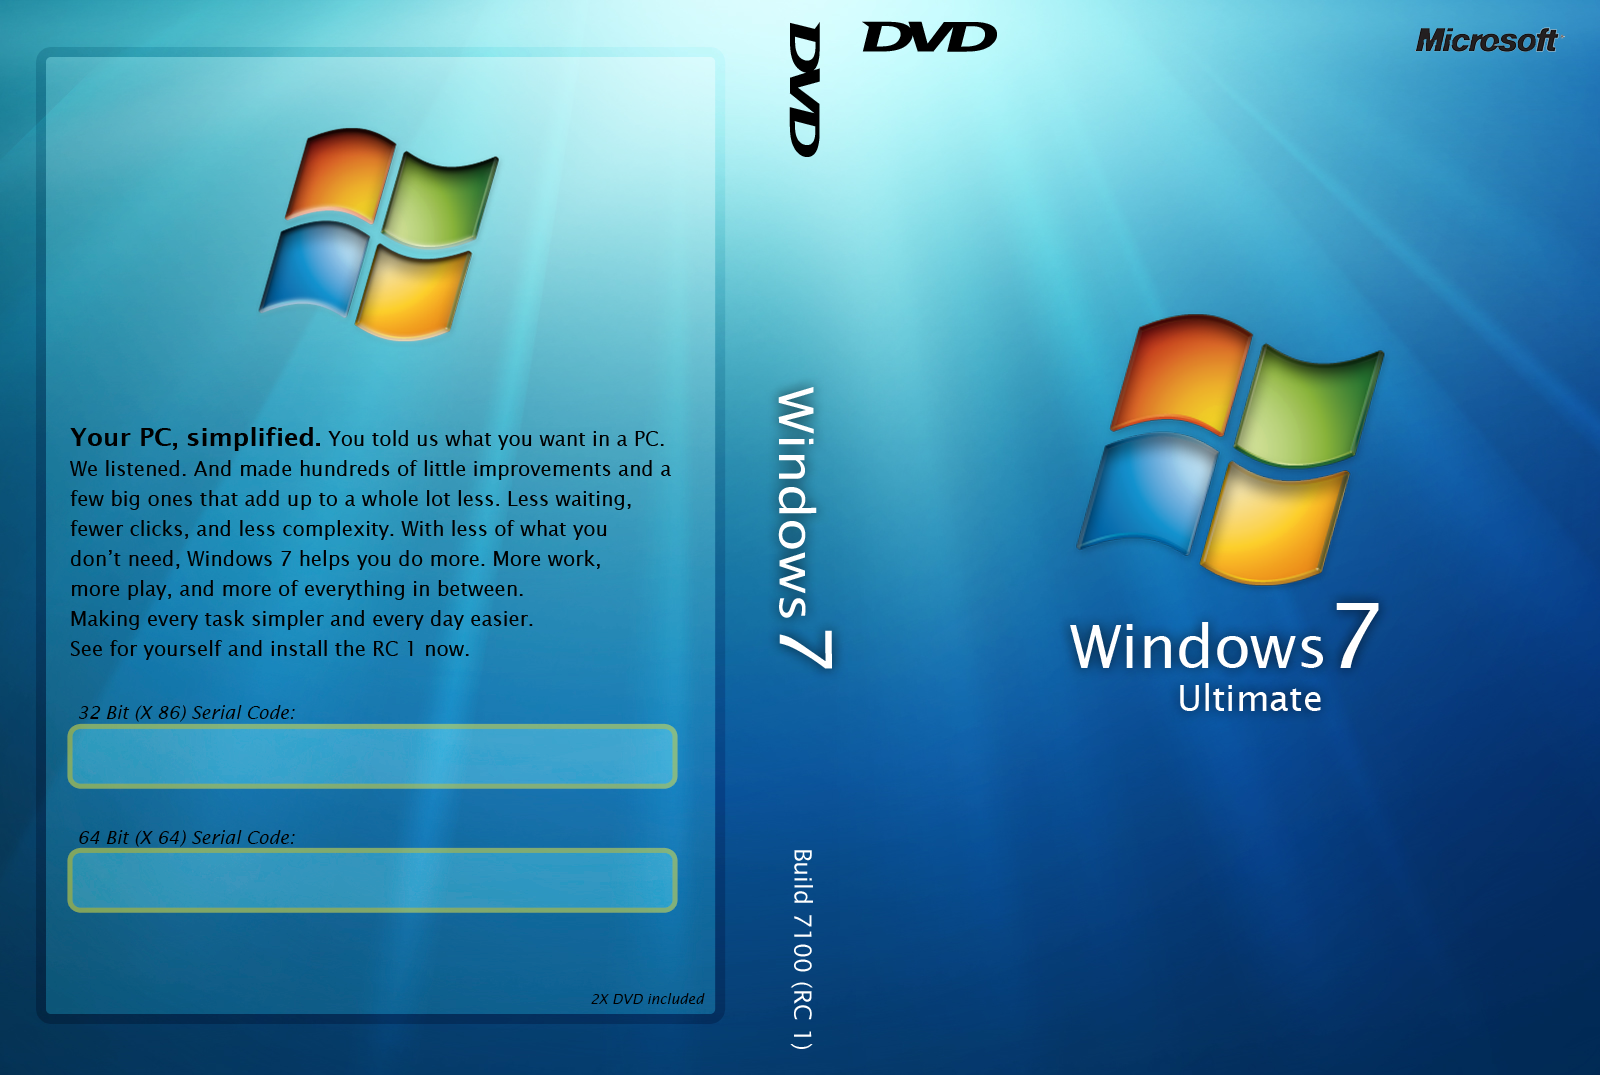 how to use windows 7 ultimate